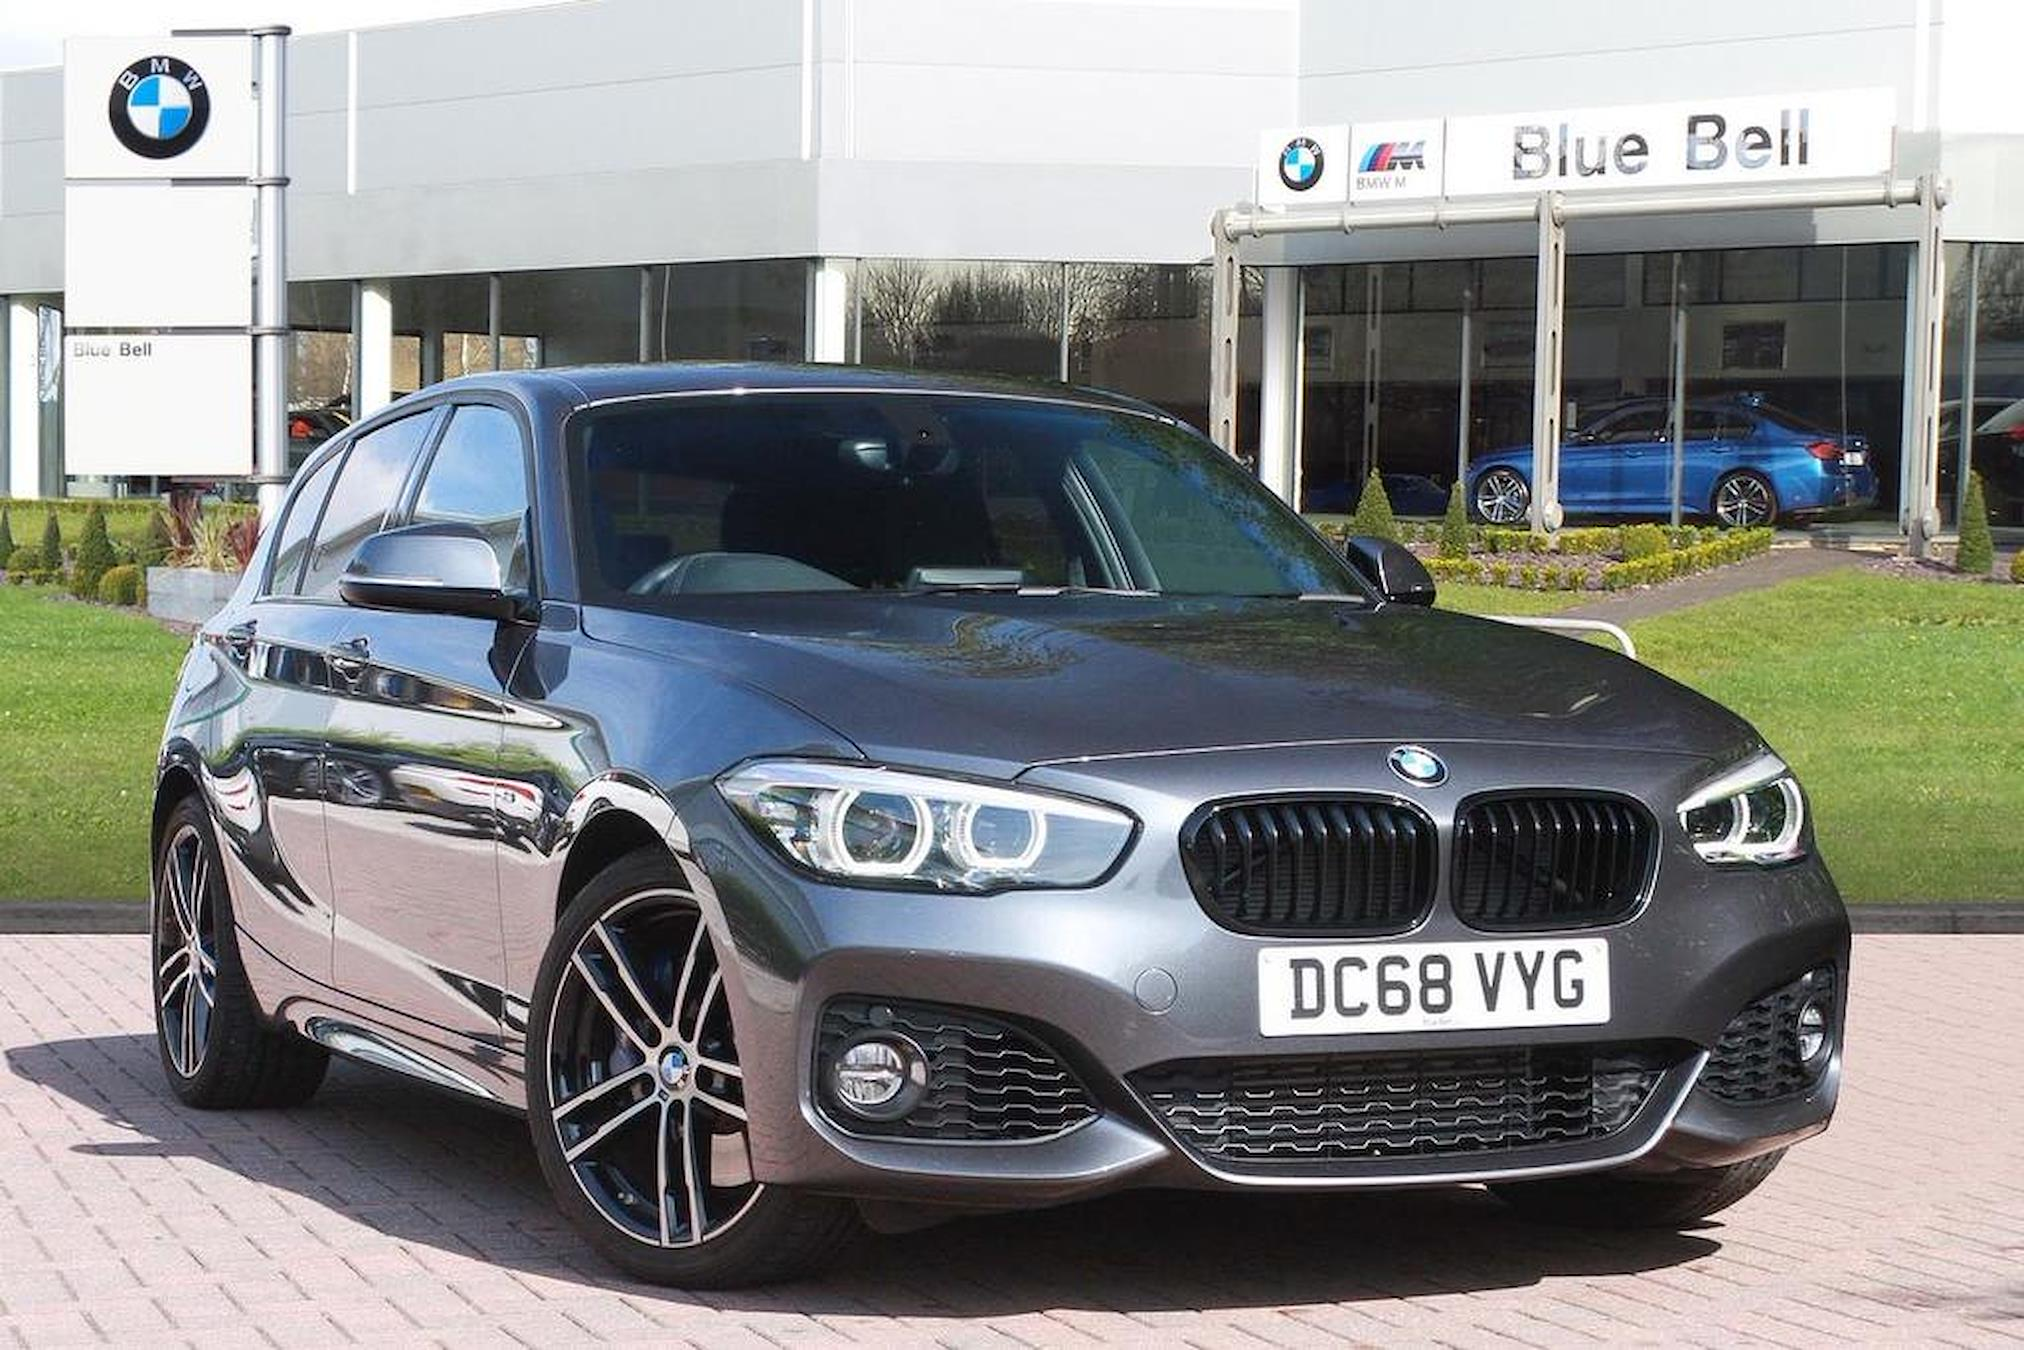 Nearly New 1 Series Bmw 118i M Sport Shadow Edition 5 Door 2019 Lookers